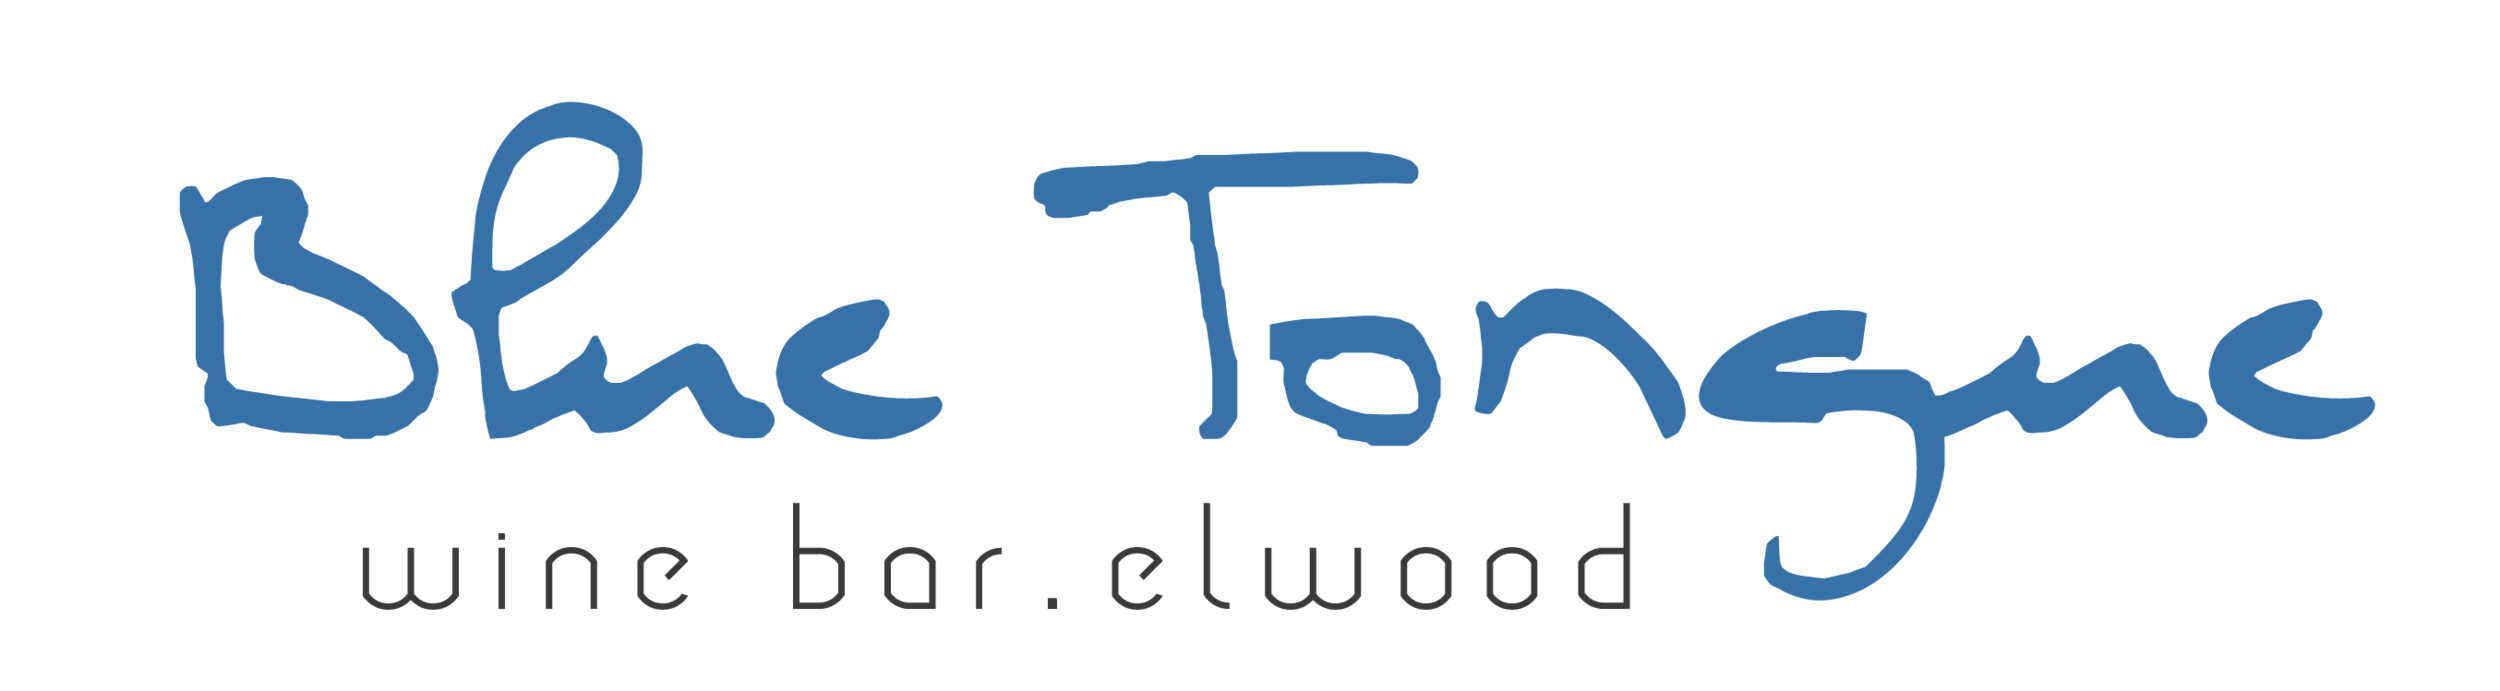 Blue Tongue Logo.png